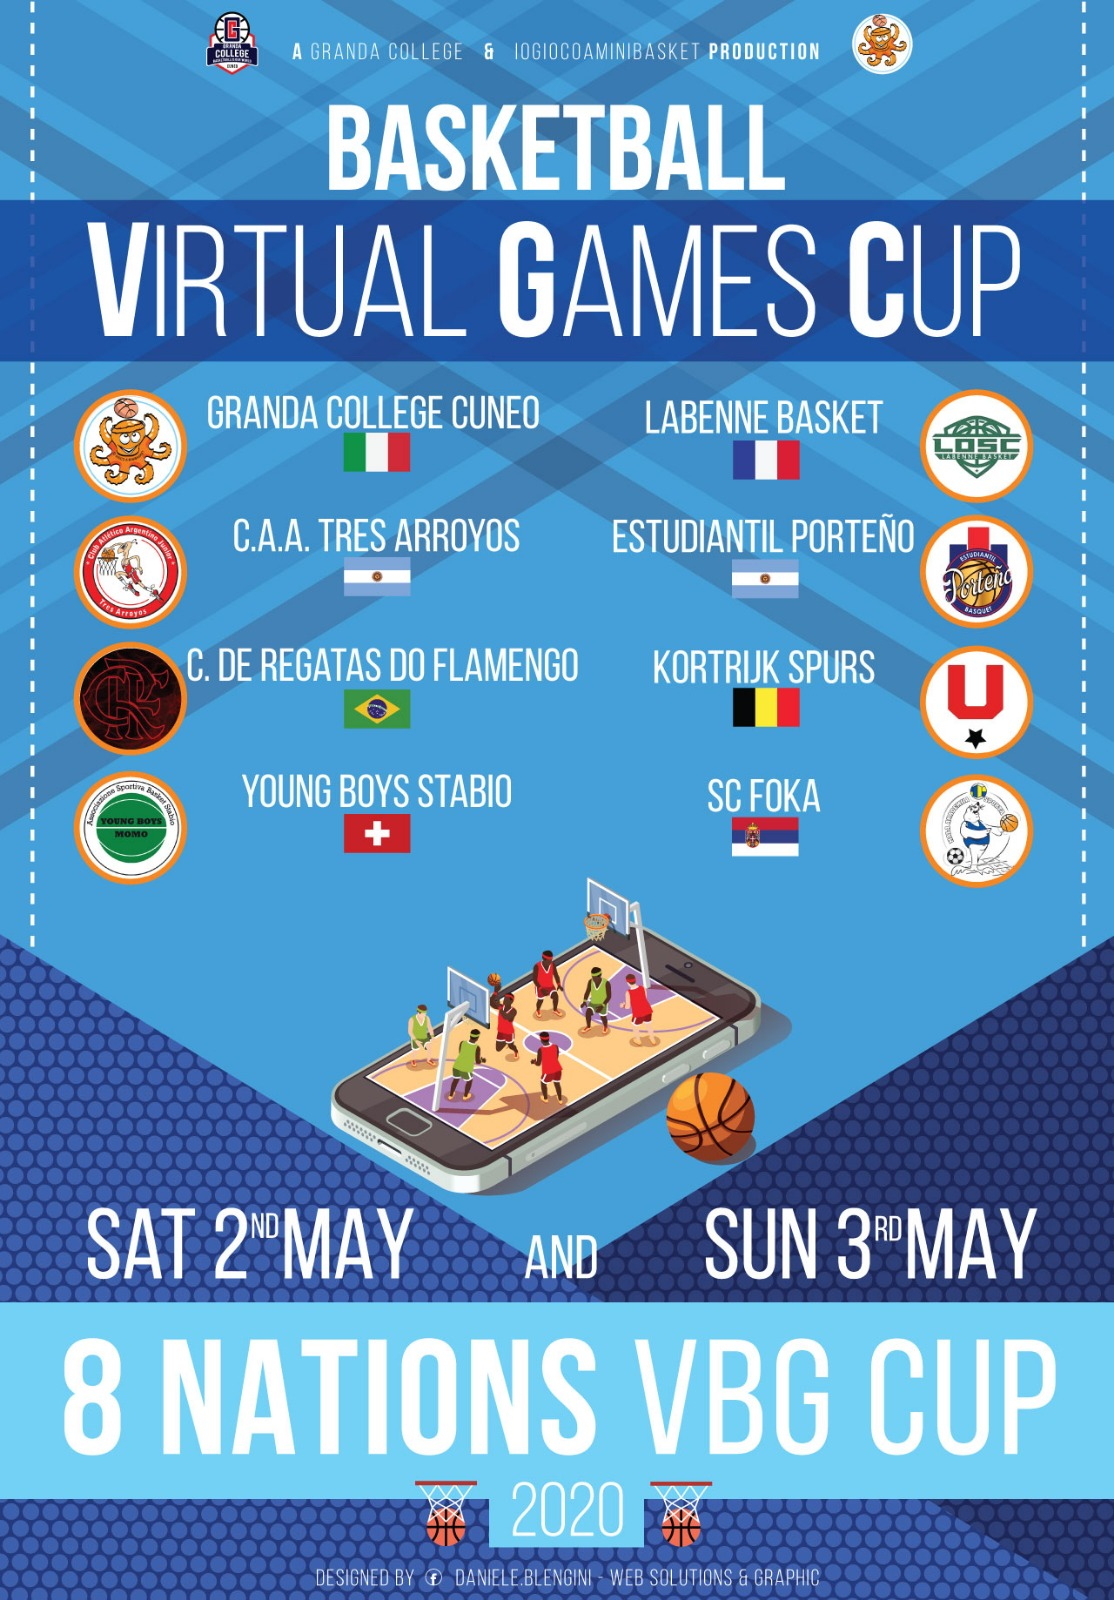 8 Nations VBG Cup - Day 2